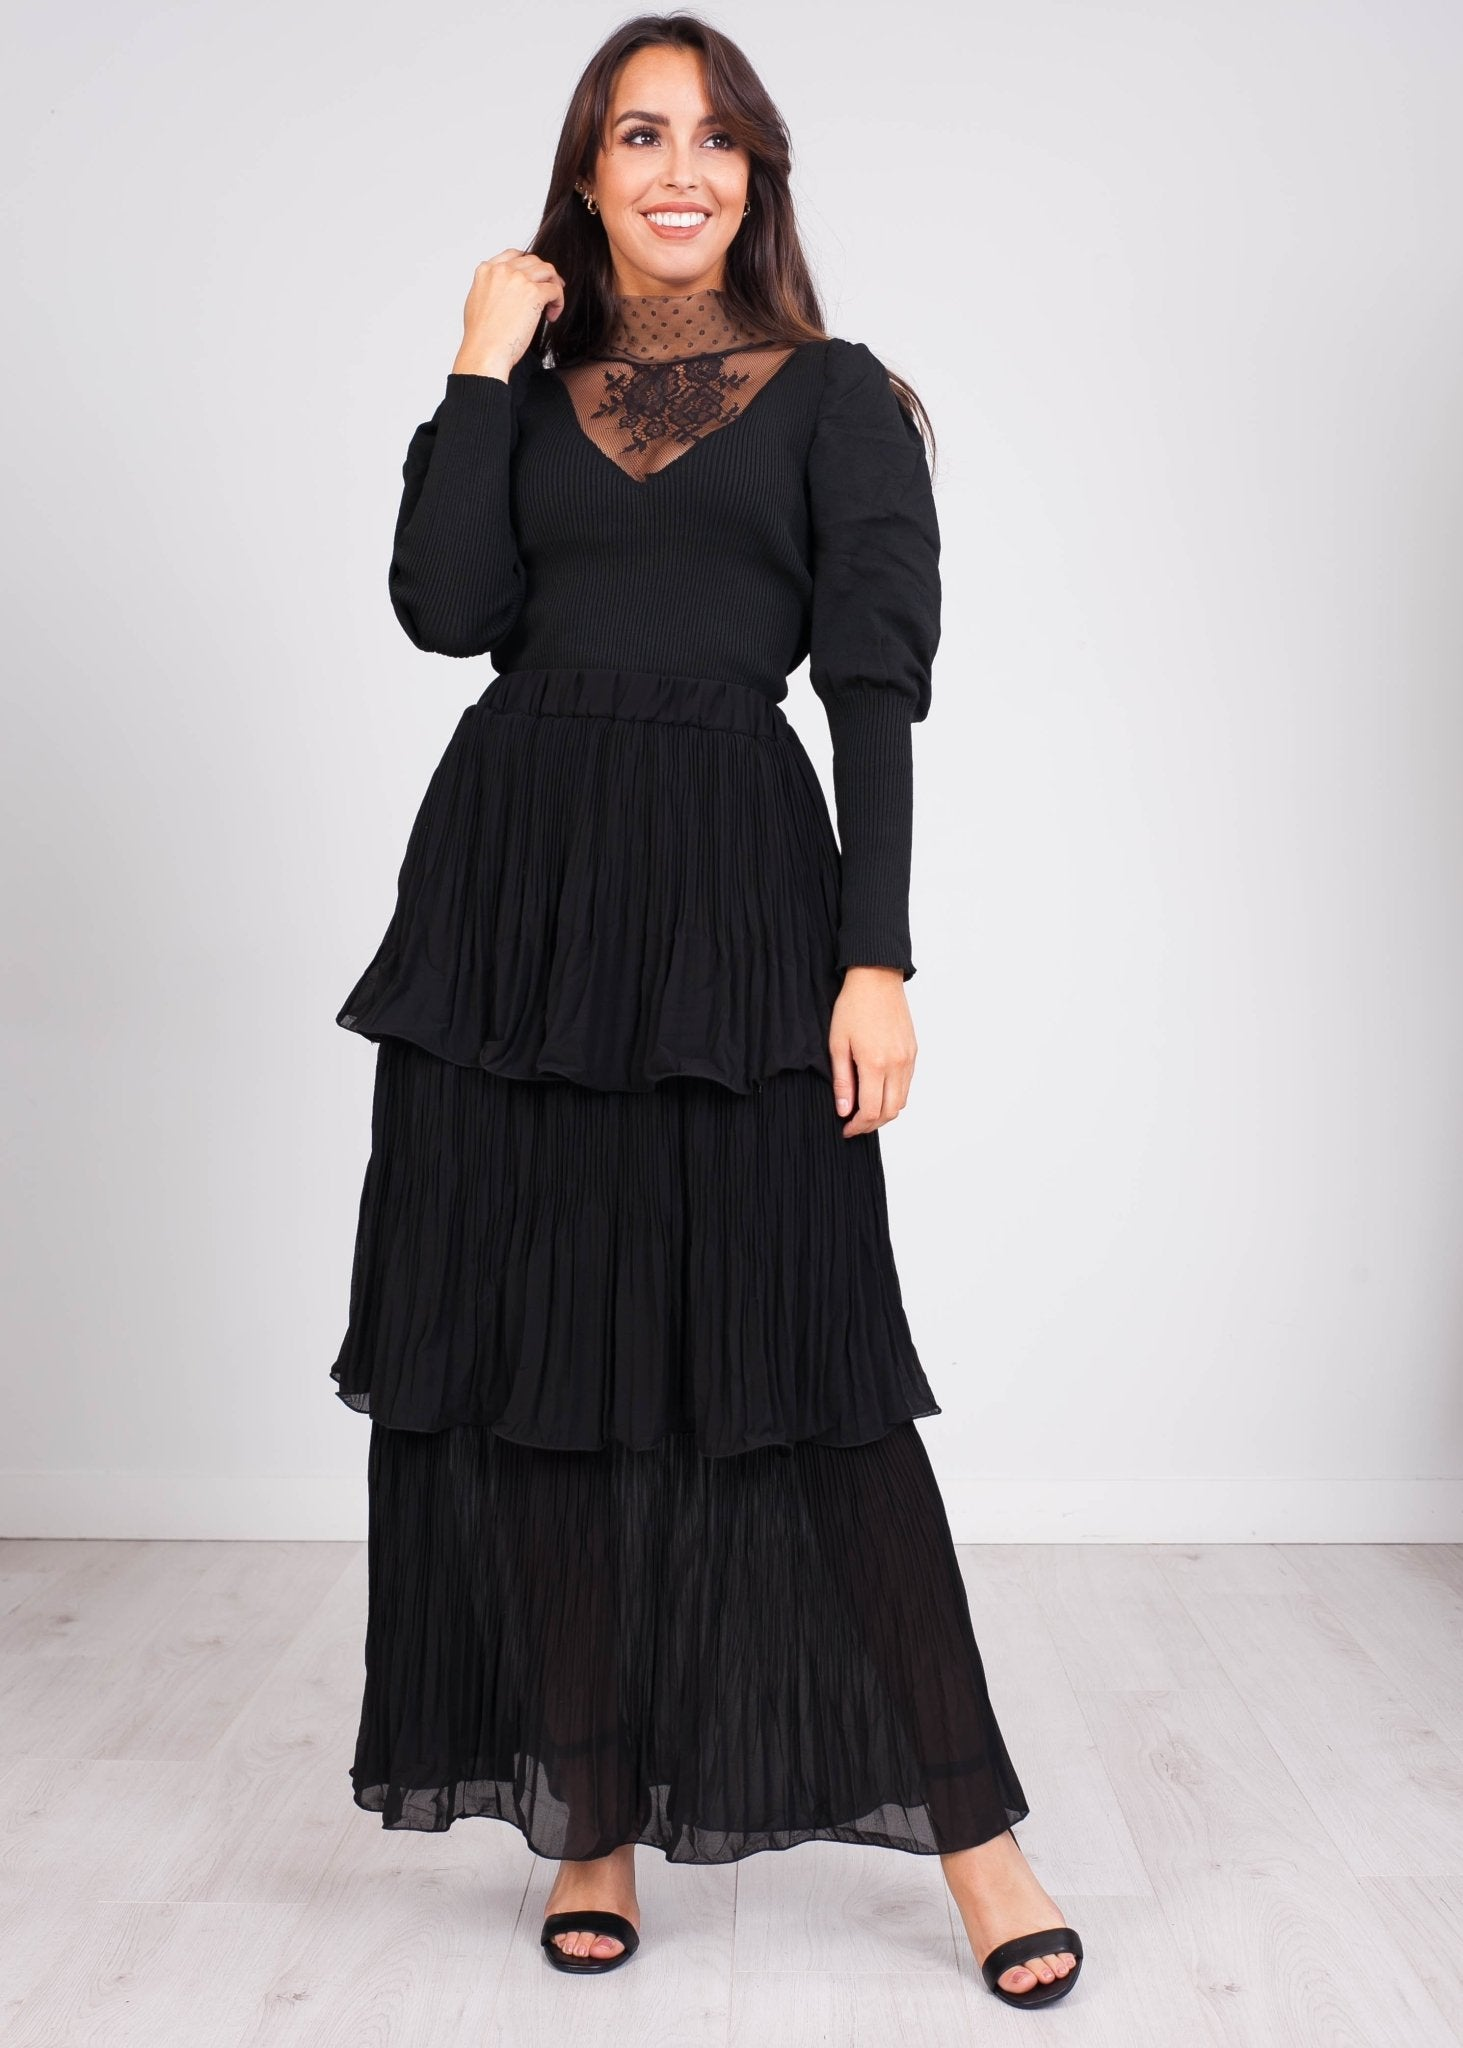 Emilia Black Jumper with Lace - The Walk in Wardrobe